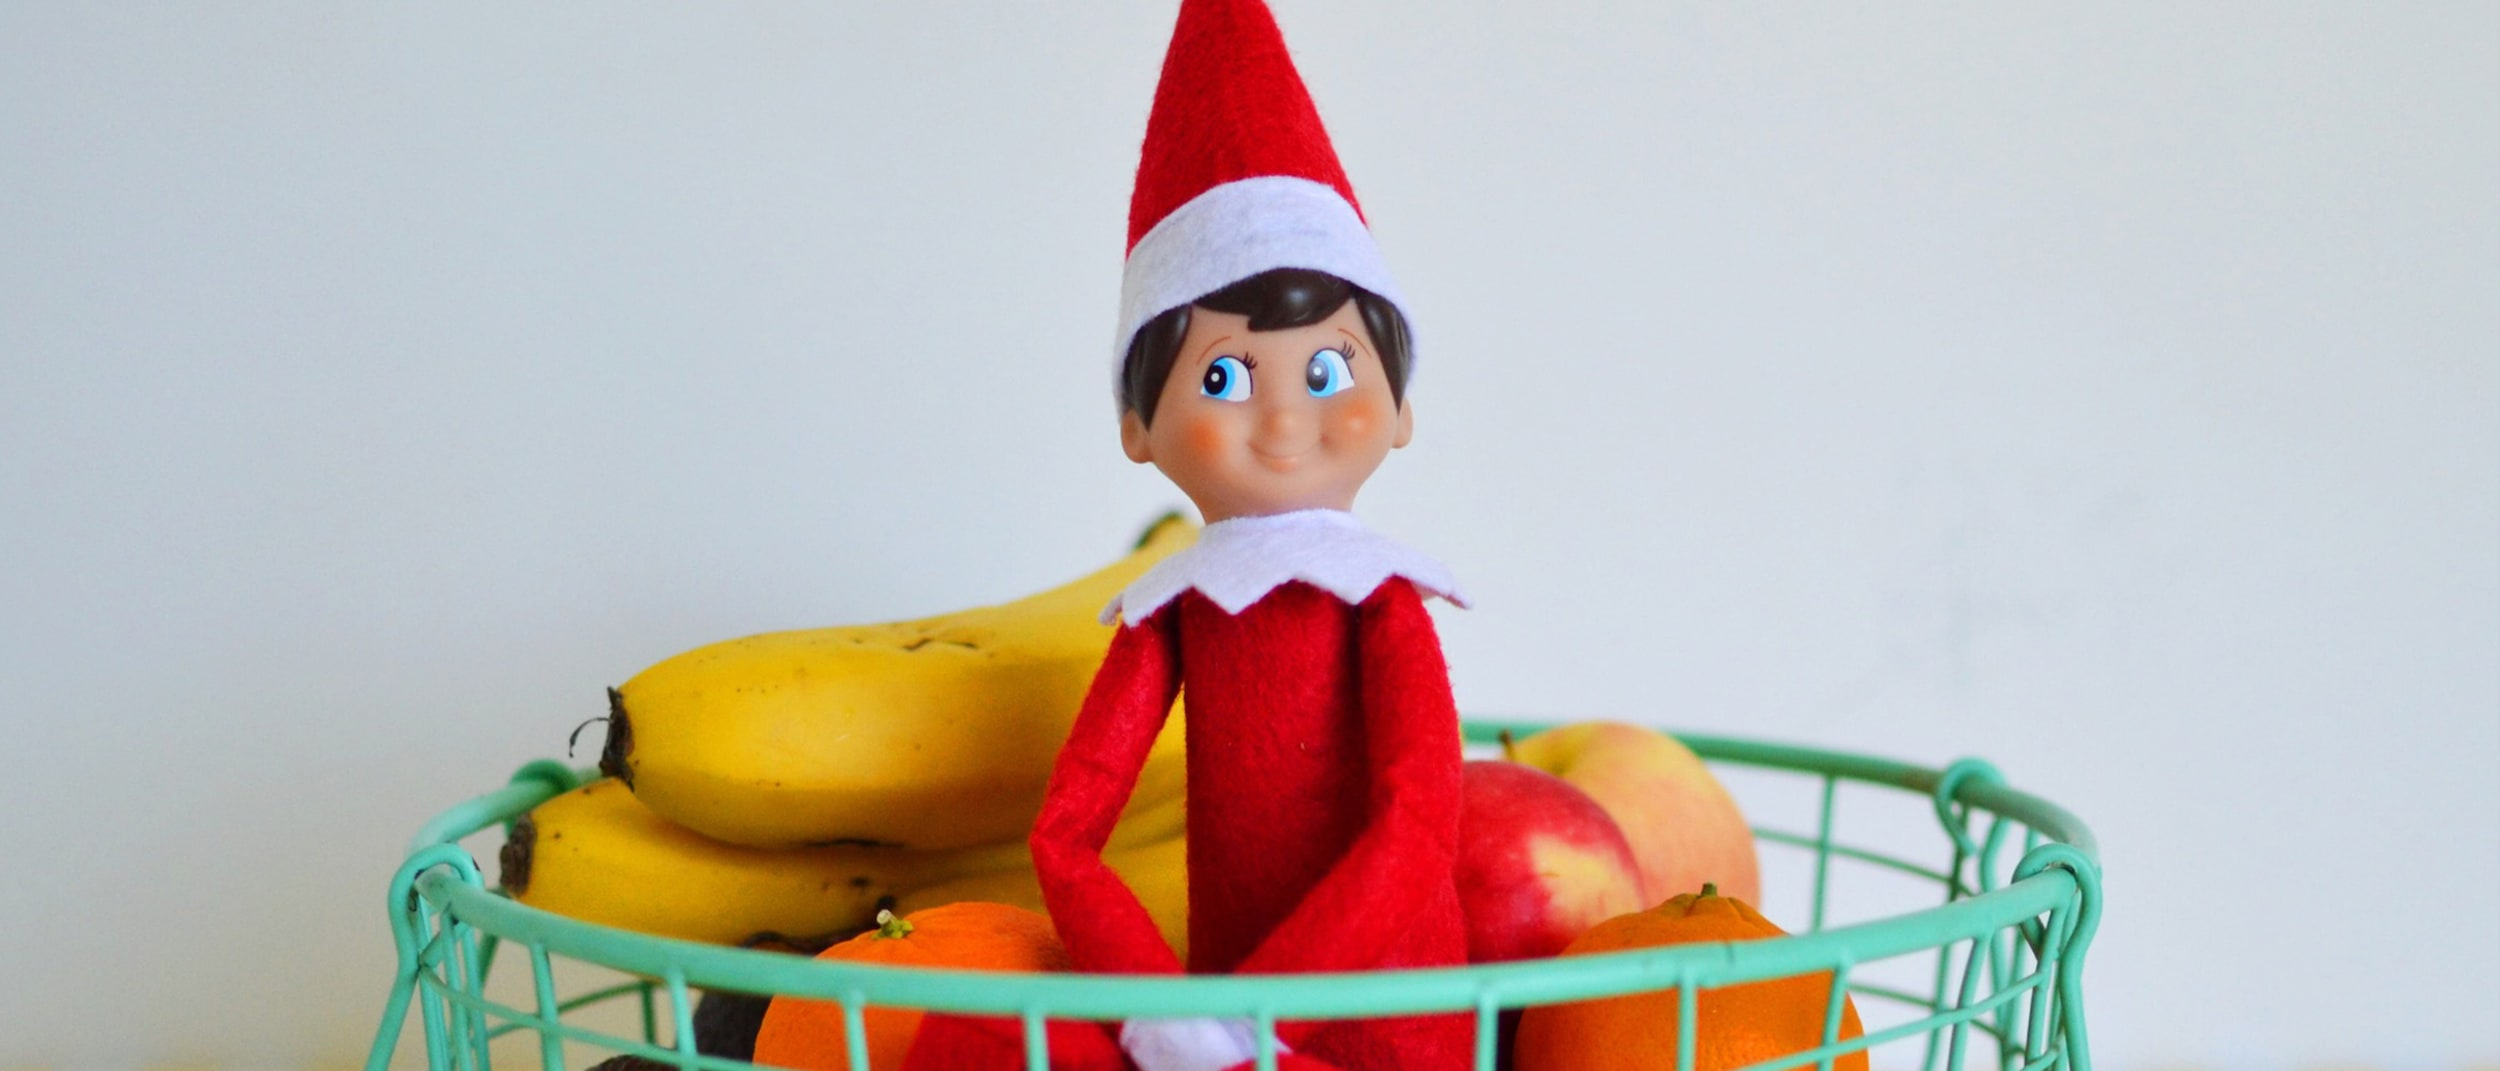 24 of the best The Elf on the Shelf® landing spots in your home